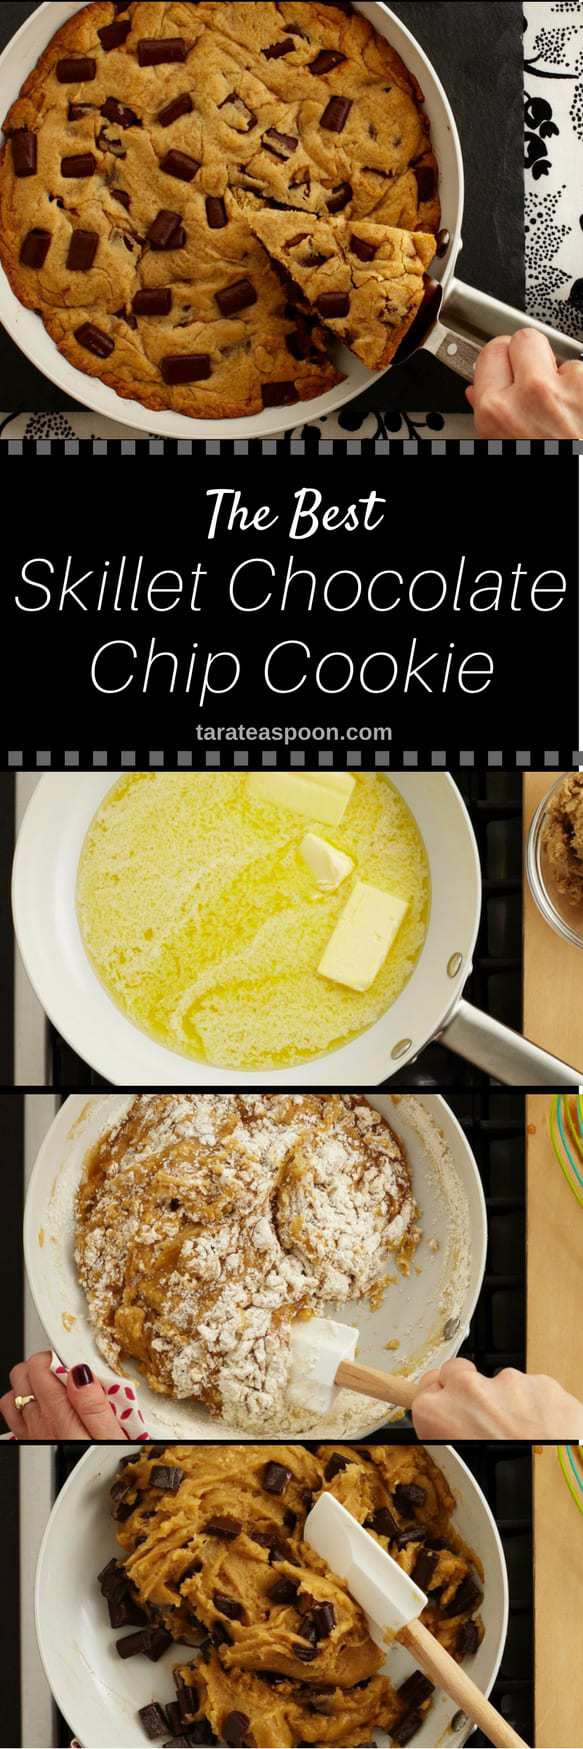 Make the Best Skillet Chocolate Chip Cookie